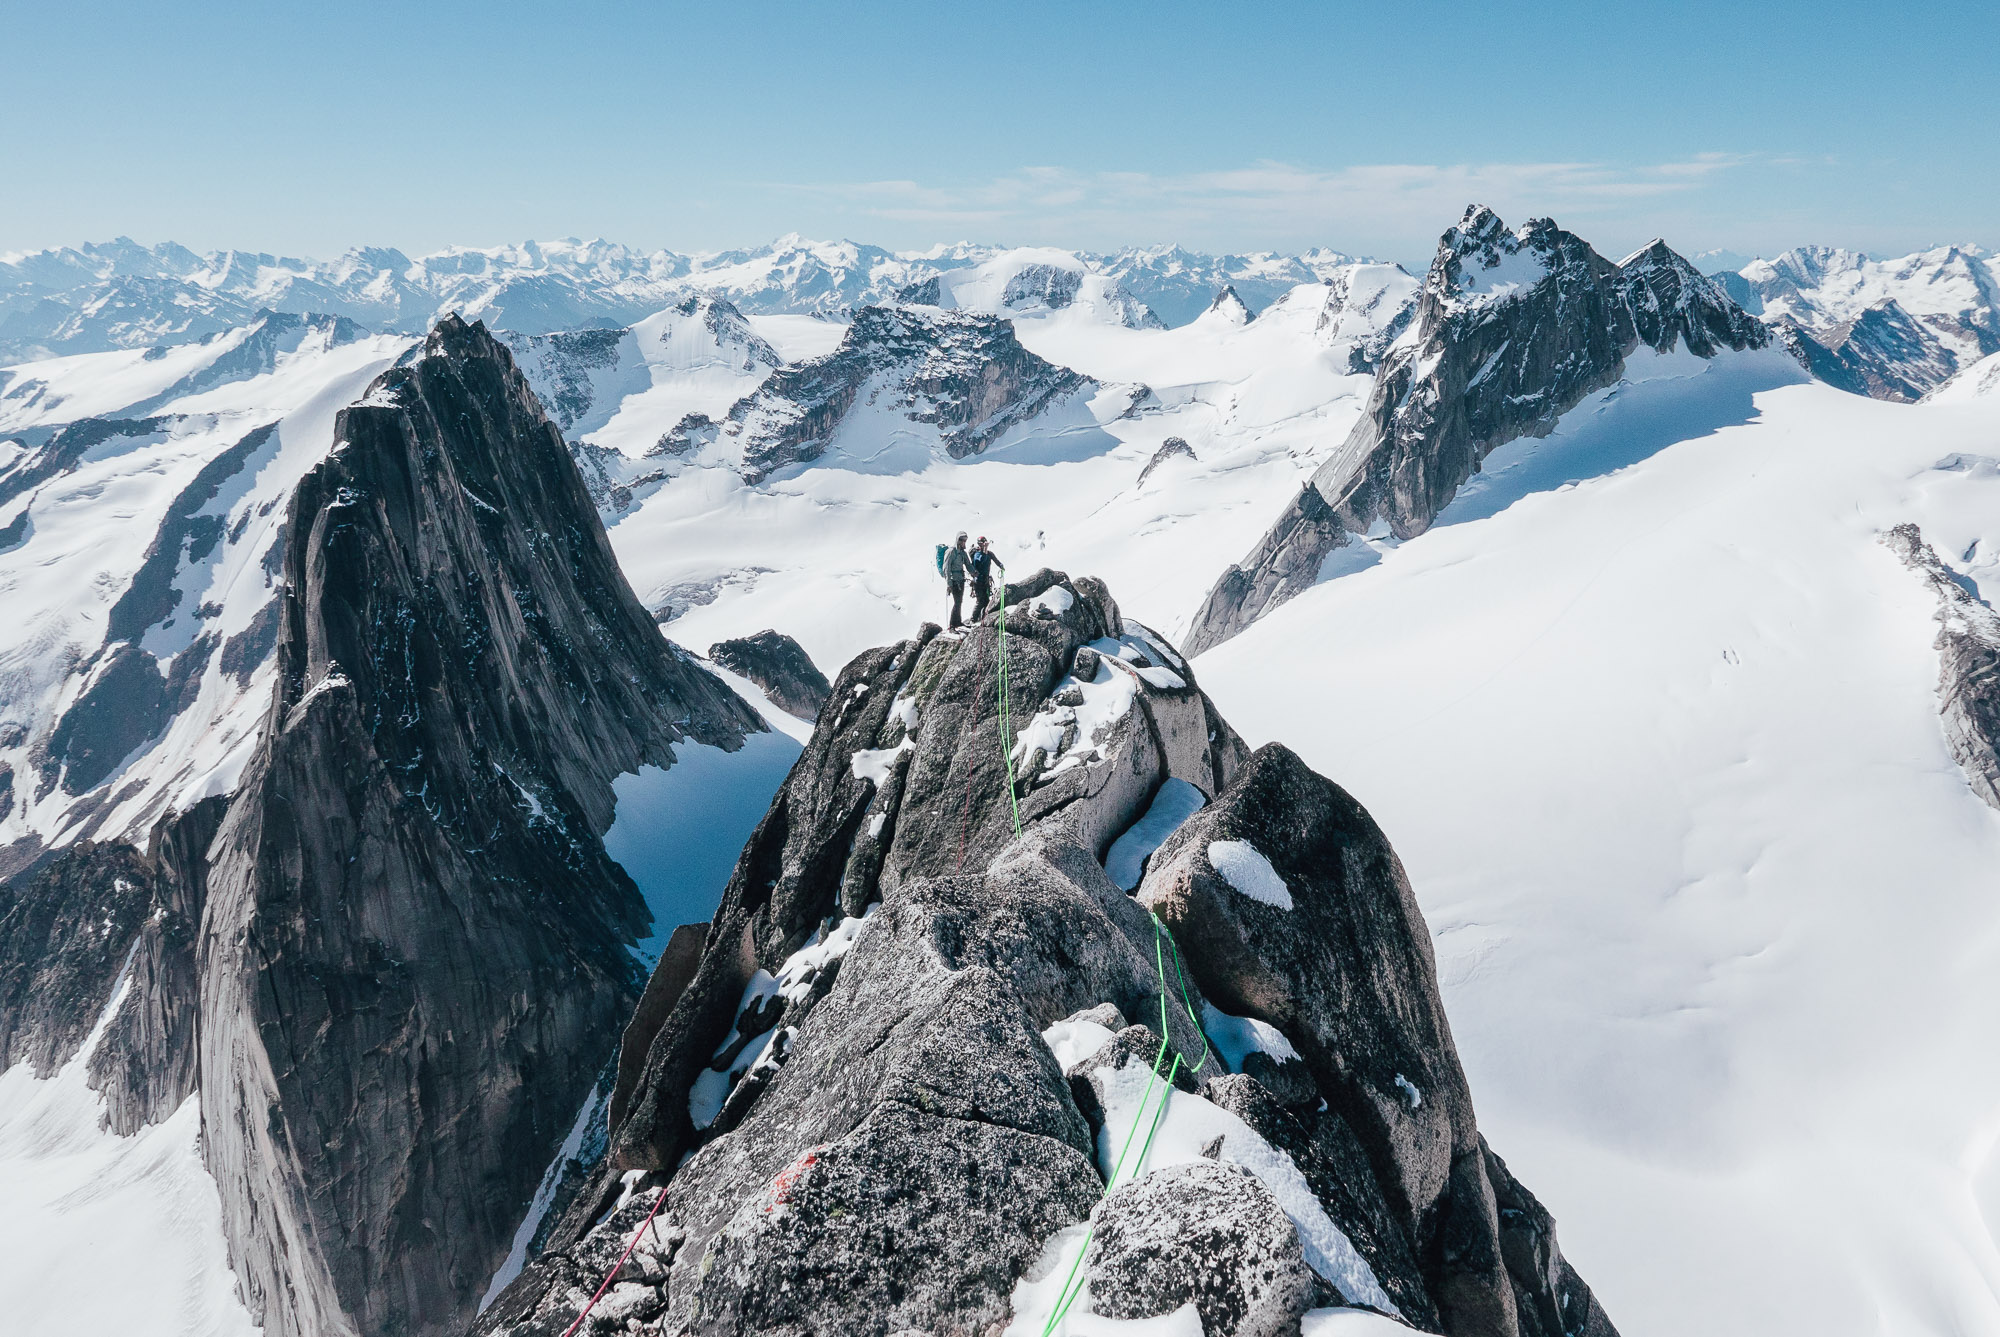 Descending the Kain Route on Bugaboo